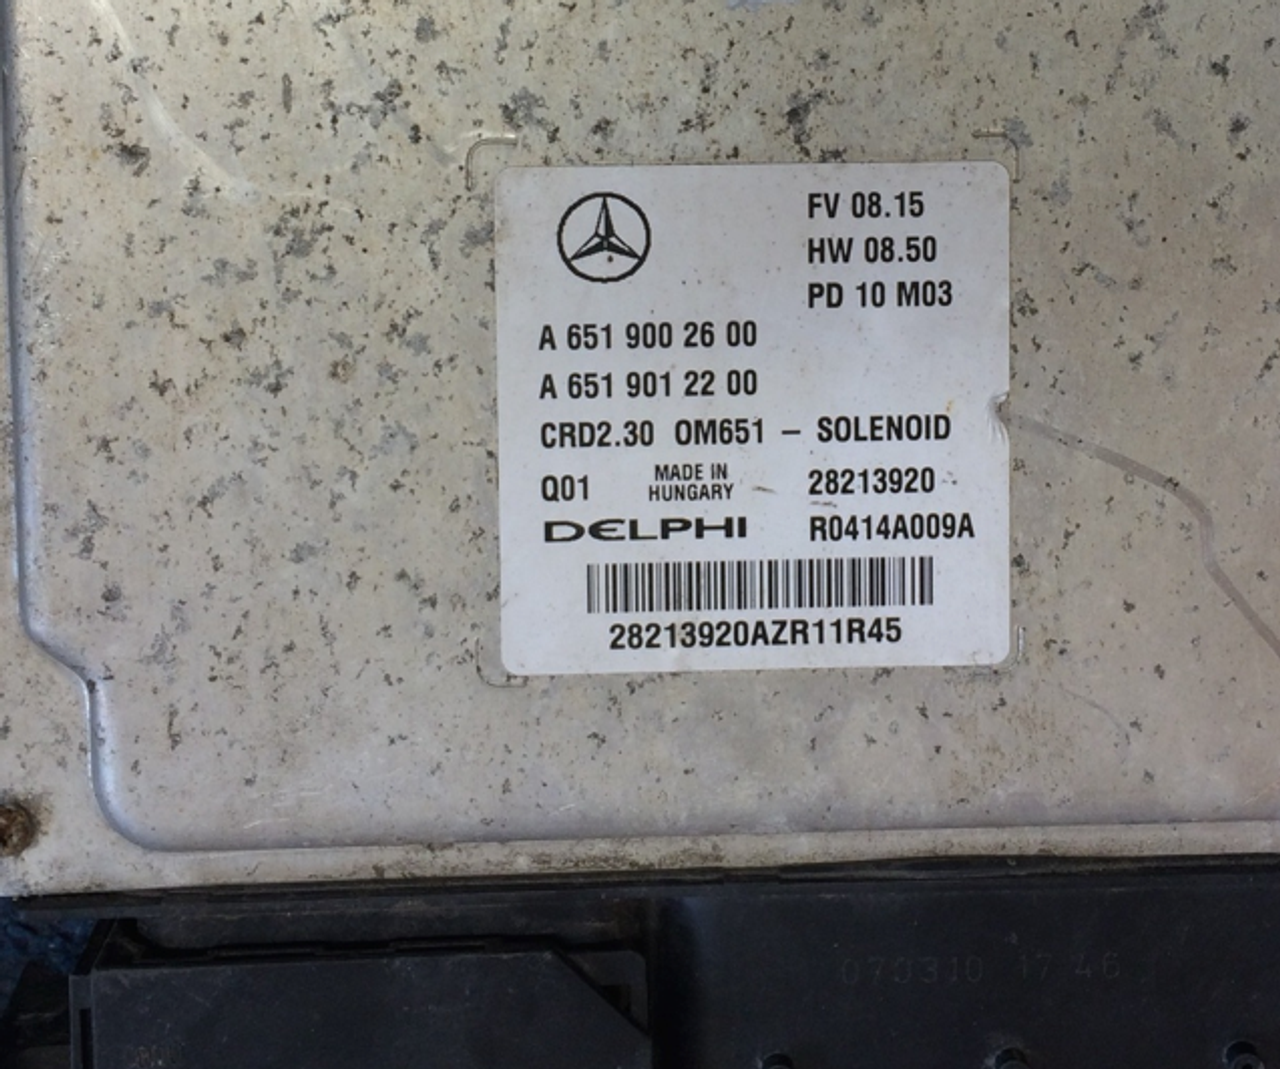 Mercedes-Benz Engine ECU, CRD2 30, OM651, 28213920, A6519002600,  A6519012200, R0414A009A, CRD2 30